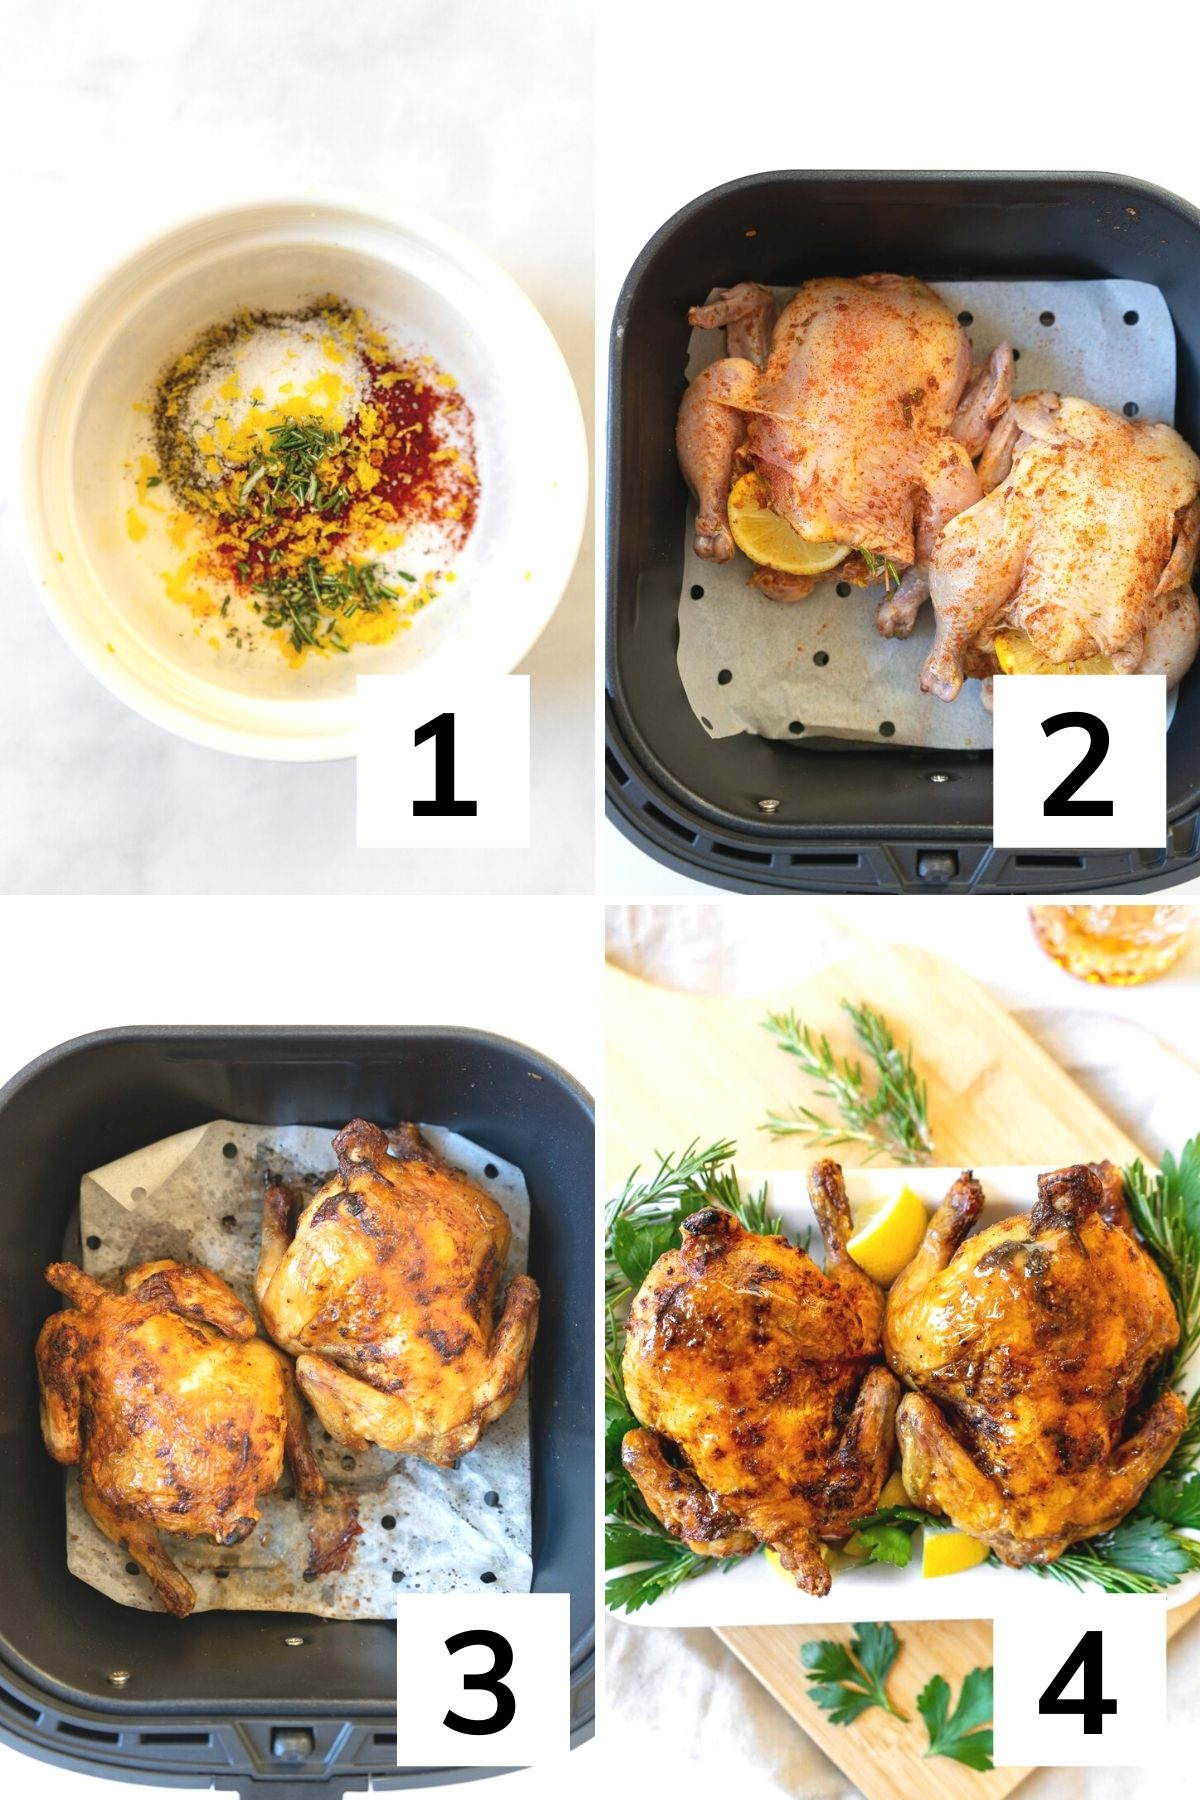 How to make Cornish game hens in the air fryer step by step